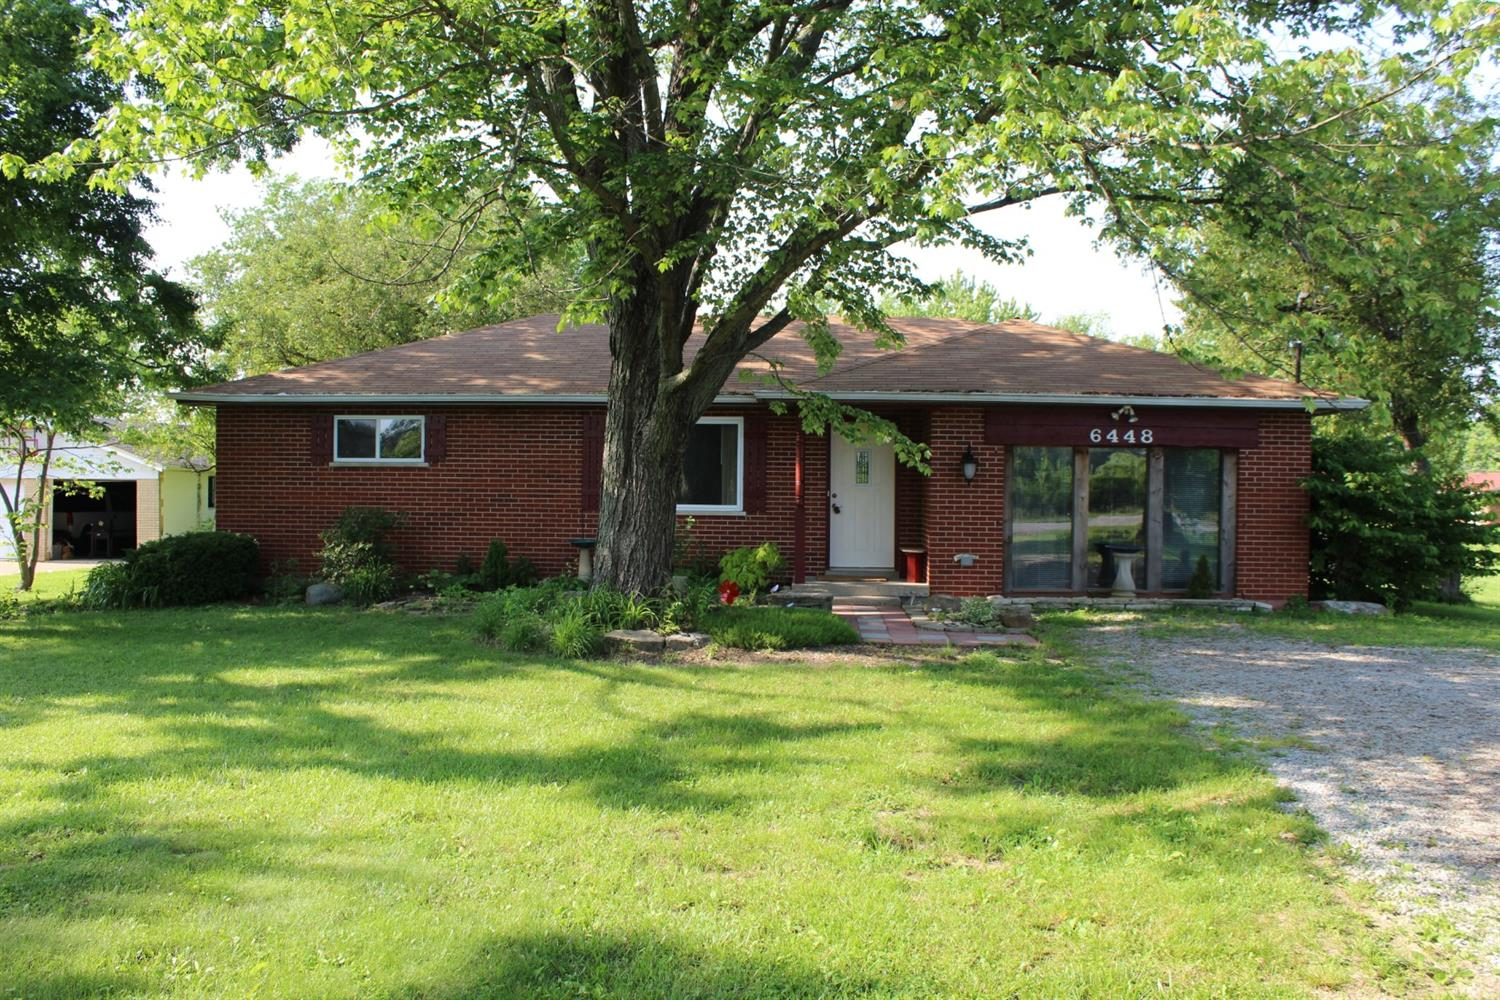 Property for sale at 6448 Socialville Foster Road, Deerfield Twp.,  Ohio 45040